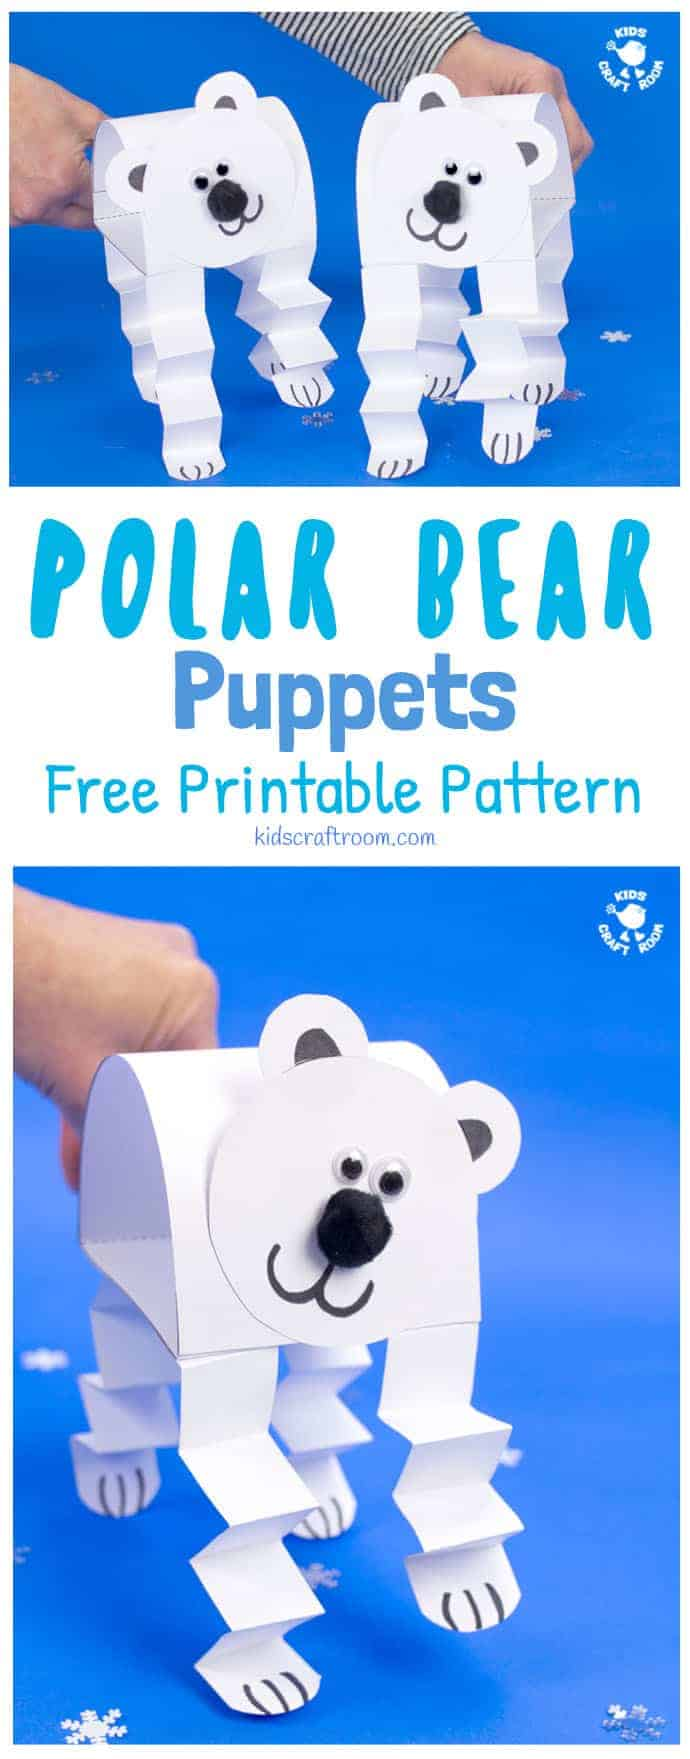 How adorable is this Polar Bear Puppet Craft! This polar bear craft is made from just one sheet of paper! Print the free pattern, cut, stick and play! What a fun Winter craft for kids! #polarbear #polarbears #winter #wintercrafts #kidscrafts #puppets #kidscraftroom #polarbearcrafts